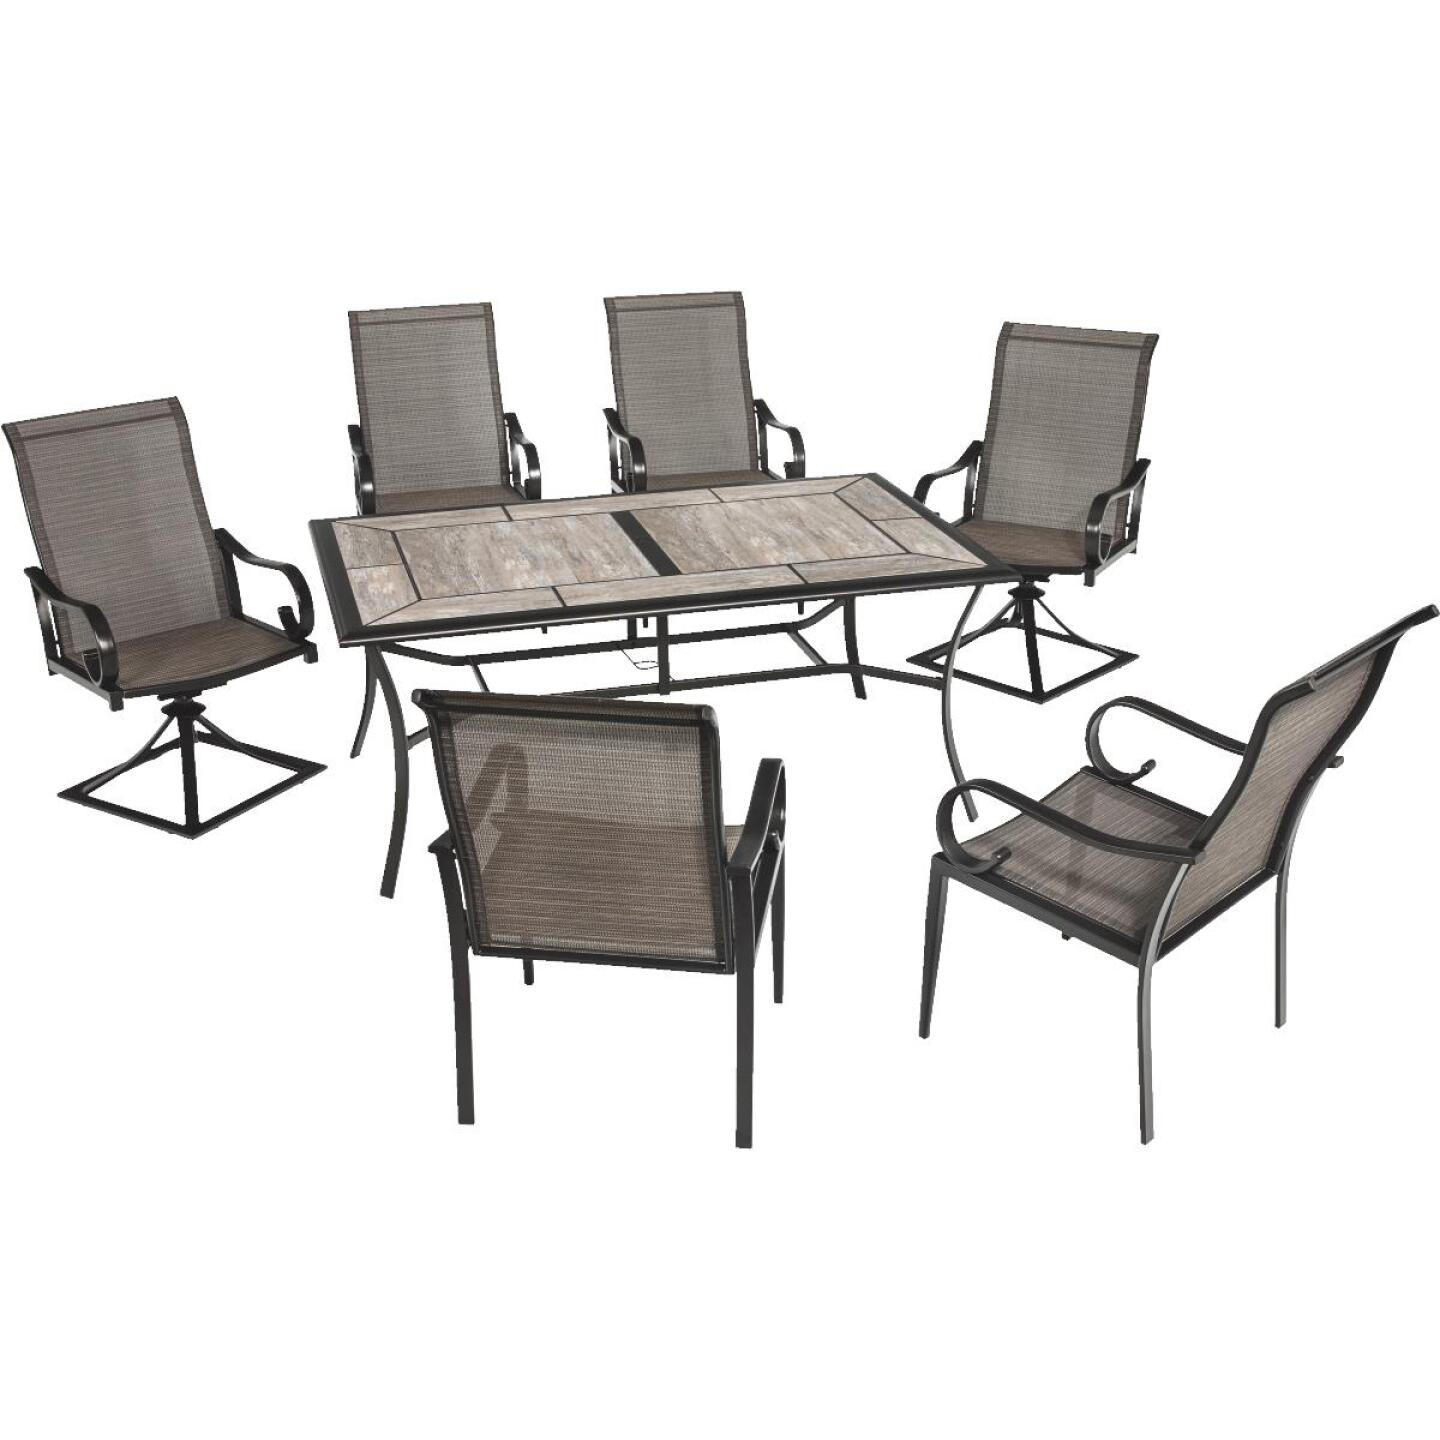 Outdoor Expressions Berkshire 7-Piece Dining Set Image 3